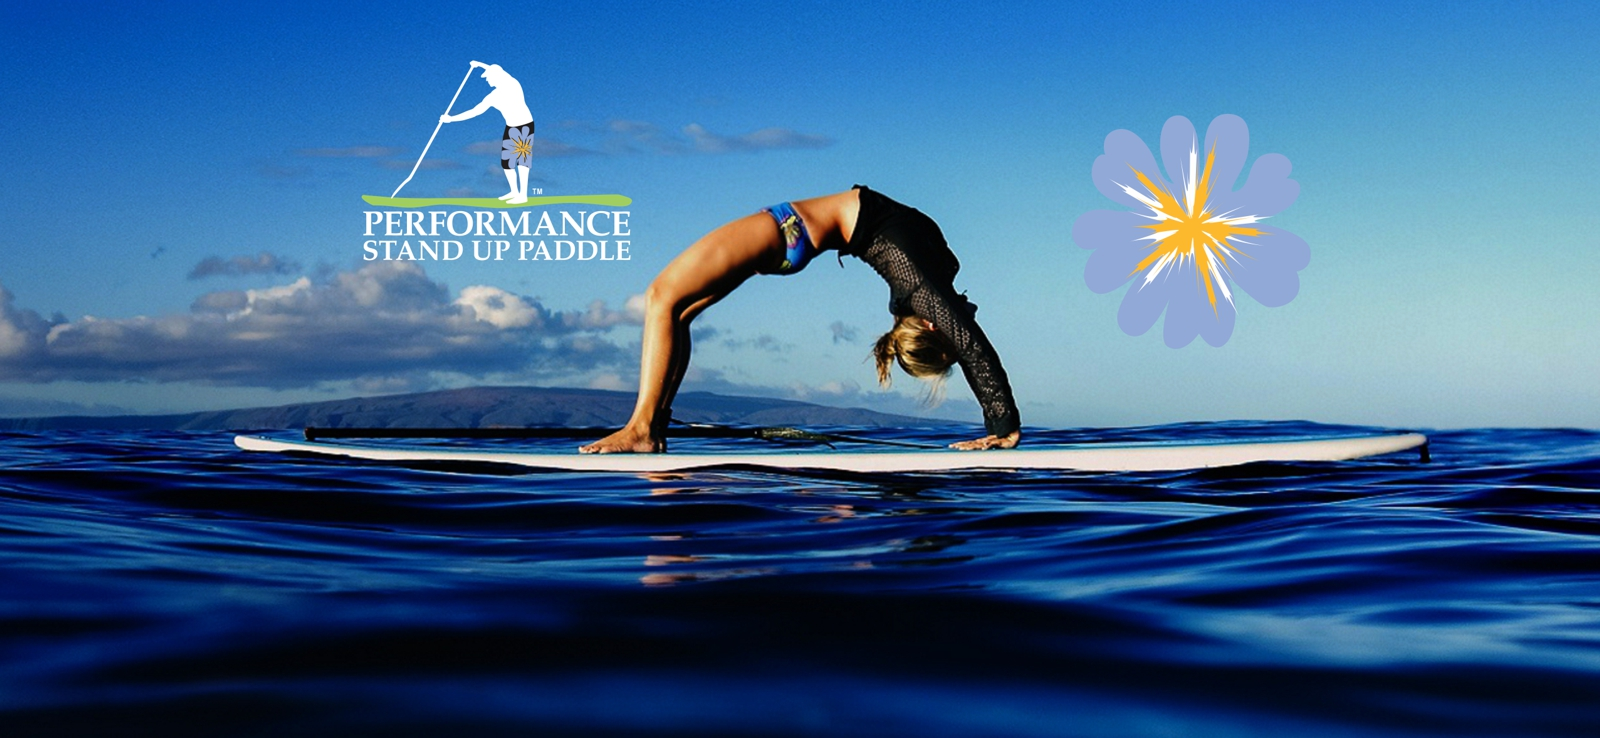 A person doing Yoga, a backbend, on her SUP in the ocean